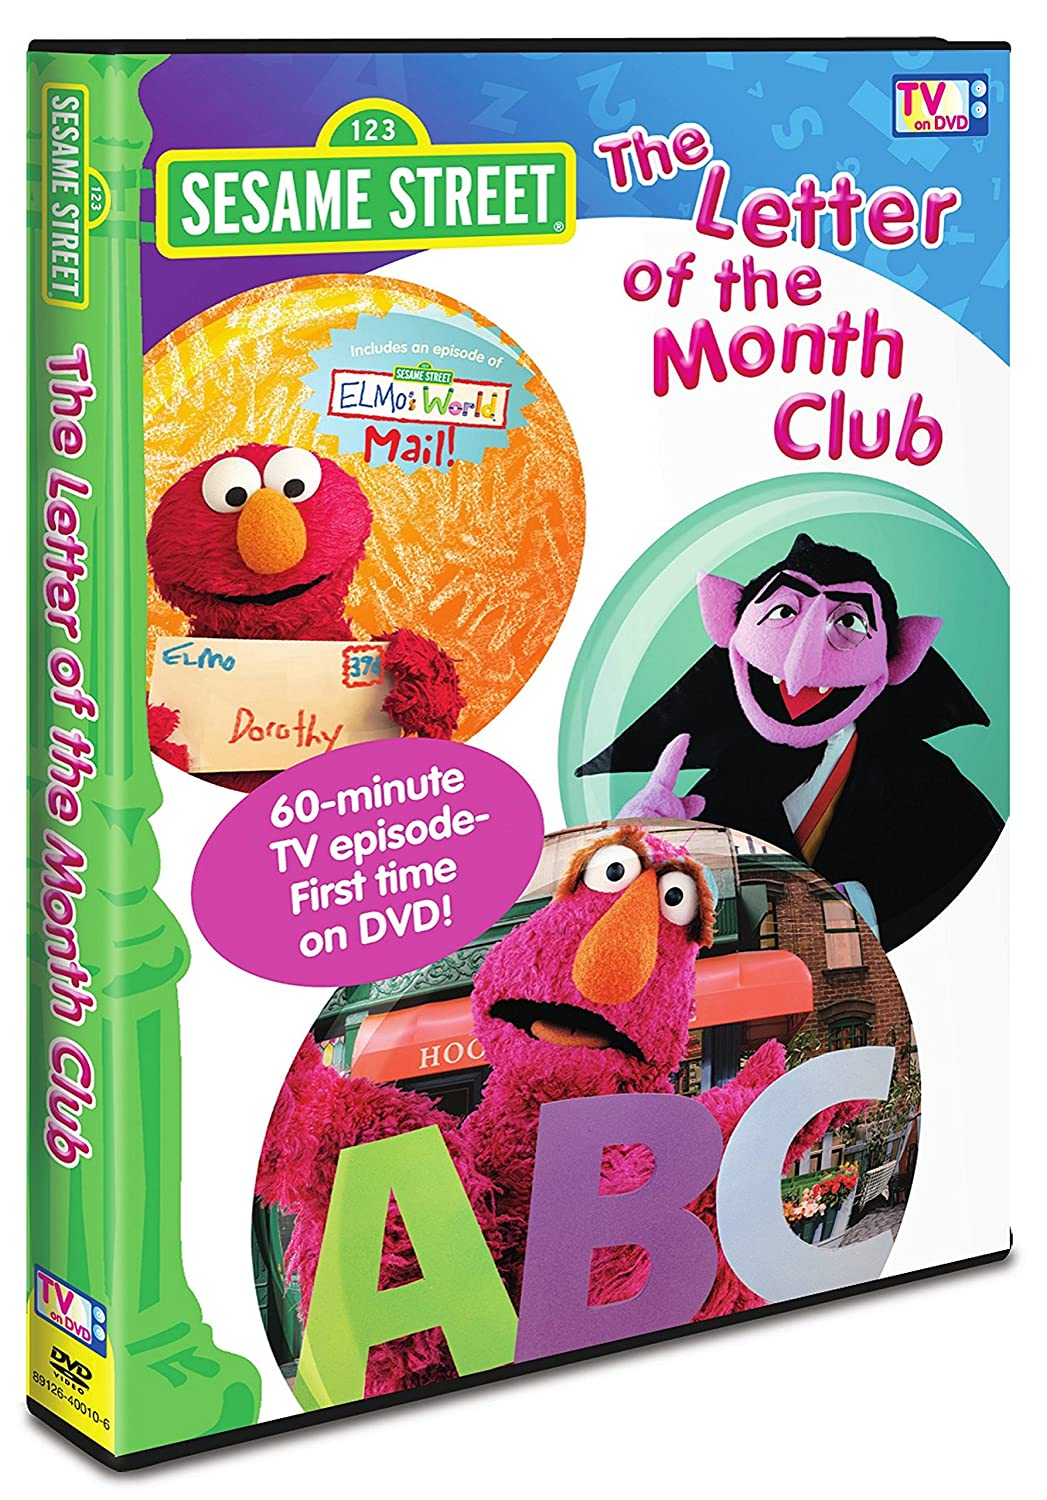 Sesame Street The Letter Of The Month Club.Amazon Com Sesame Street The Letter Of The Month Club